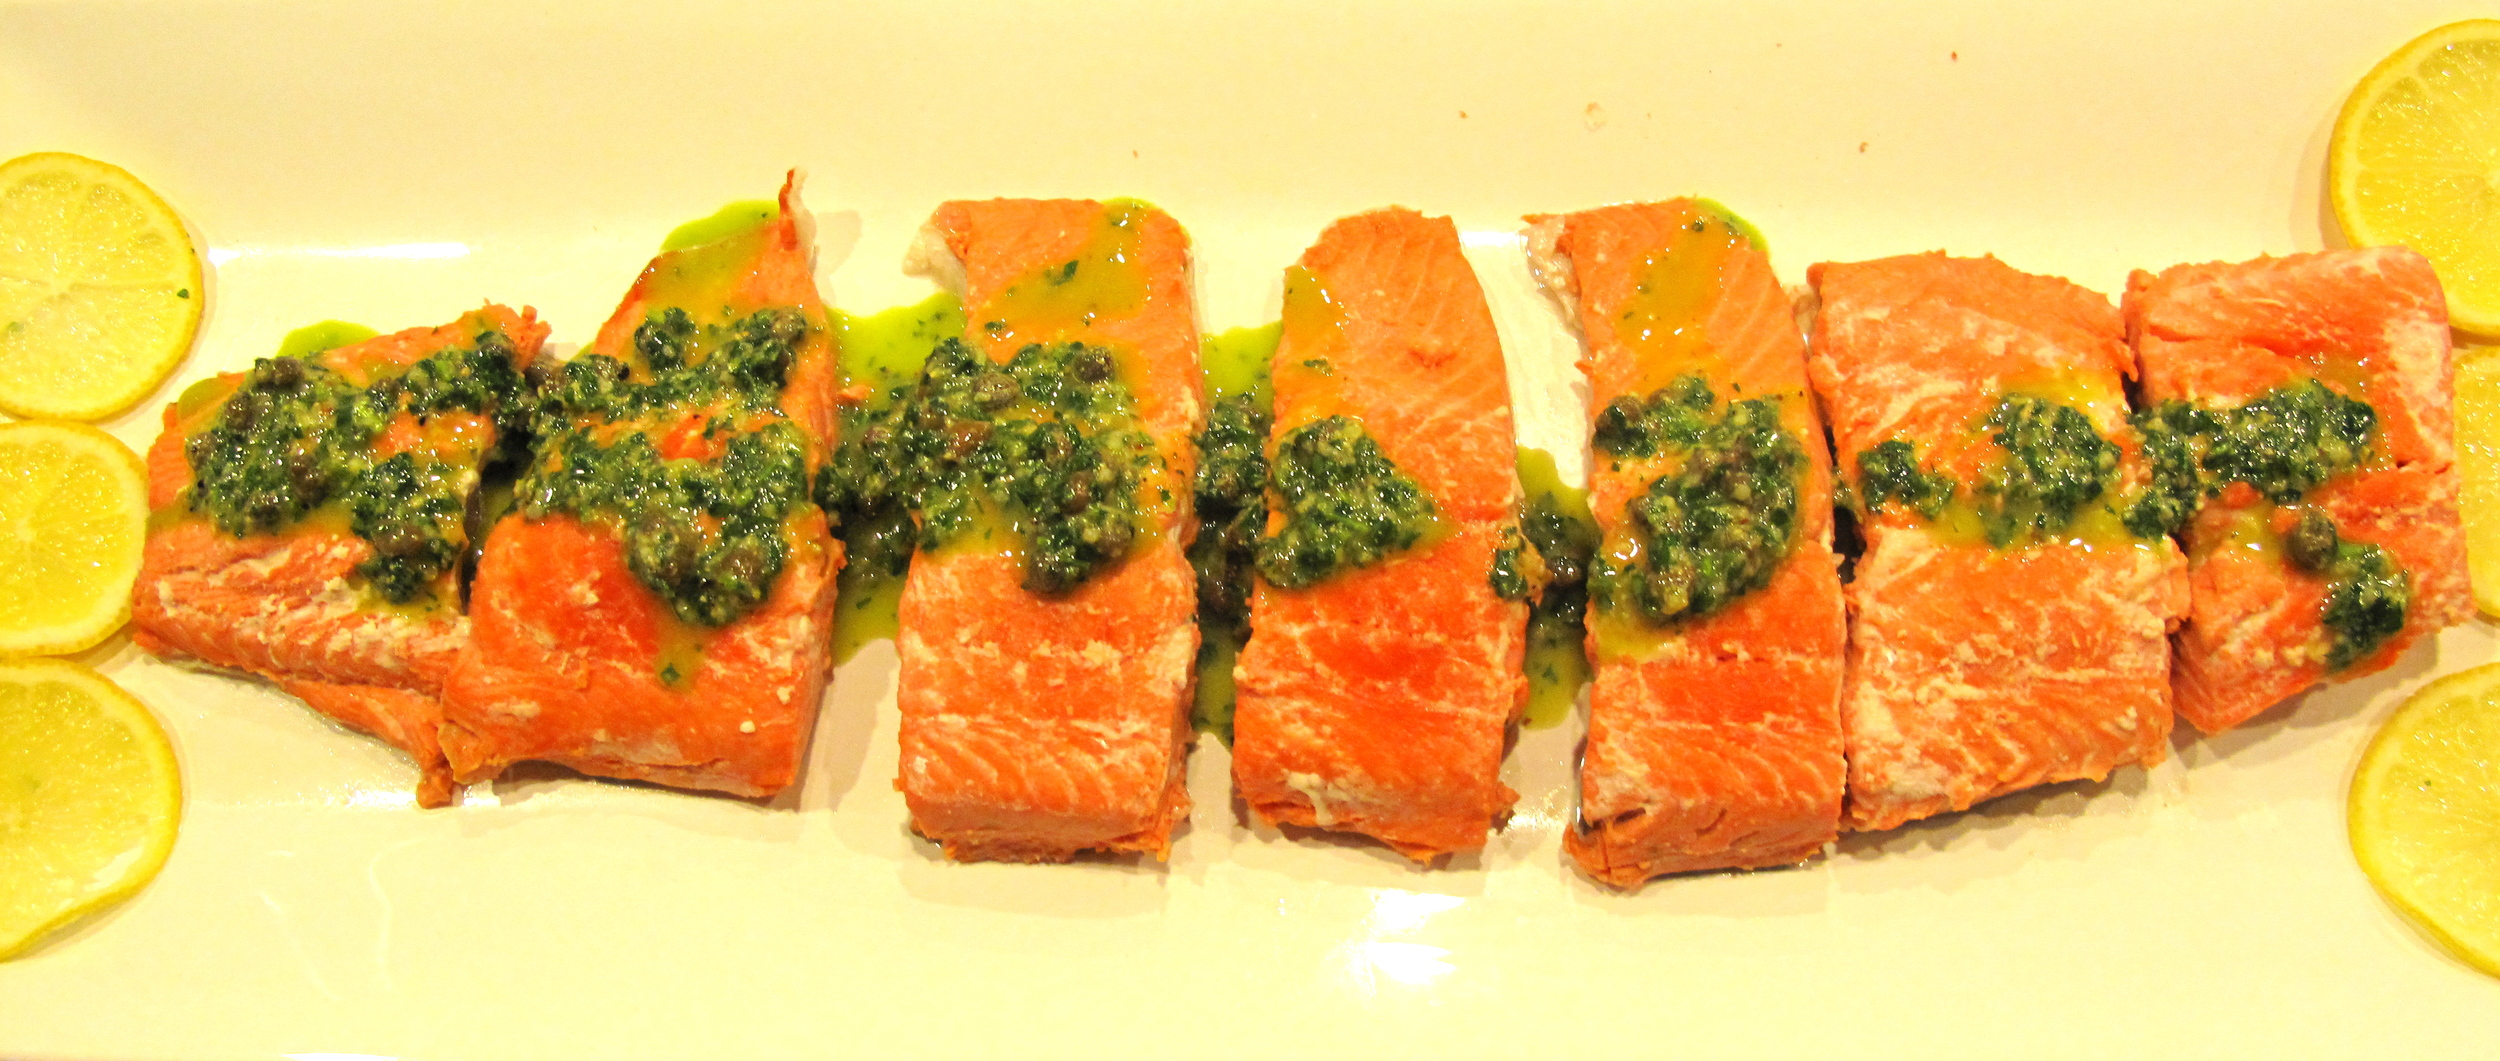 Poached salmon is a simple dish that's great for parties and delicious the next day.